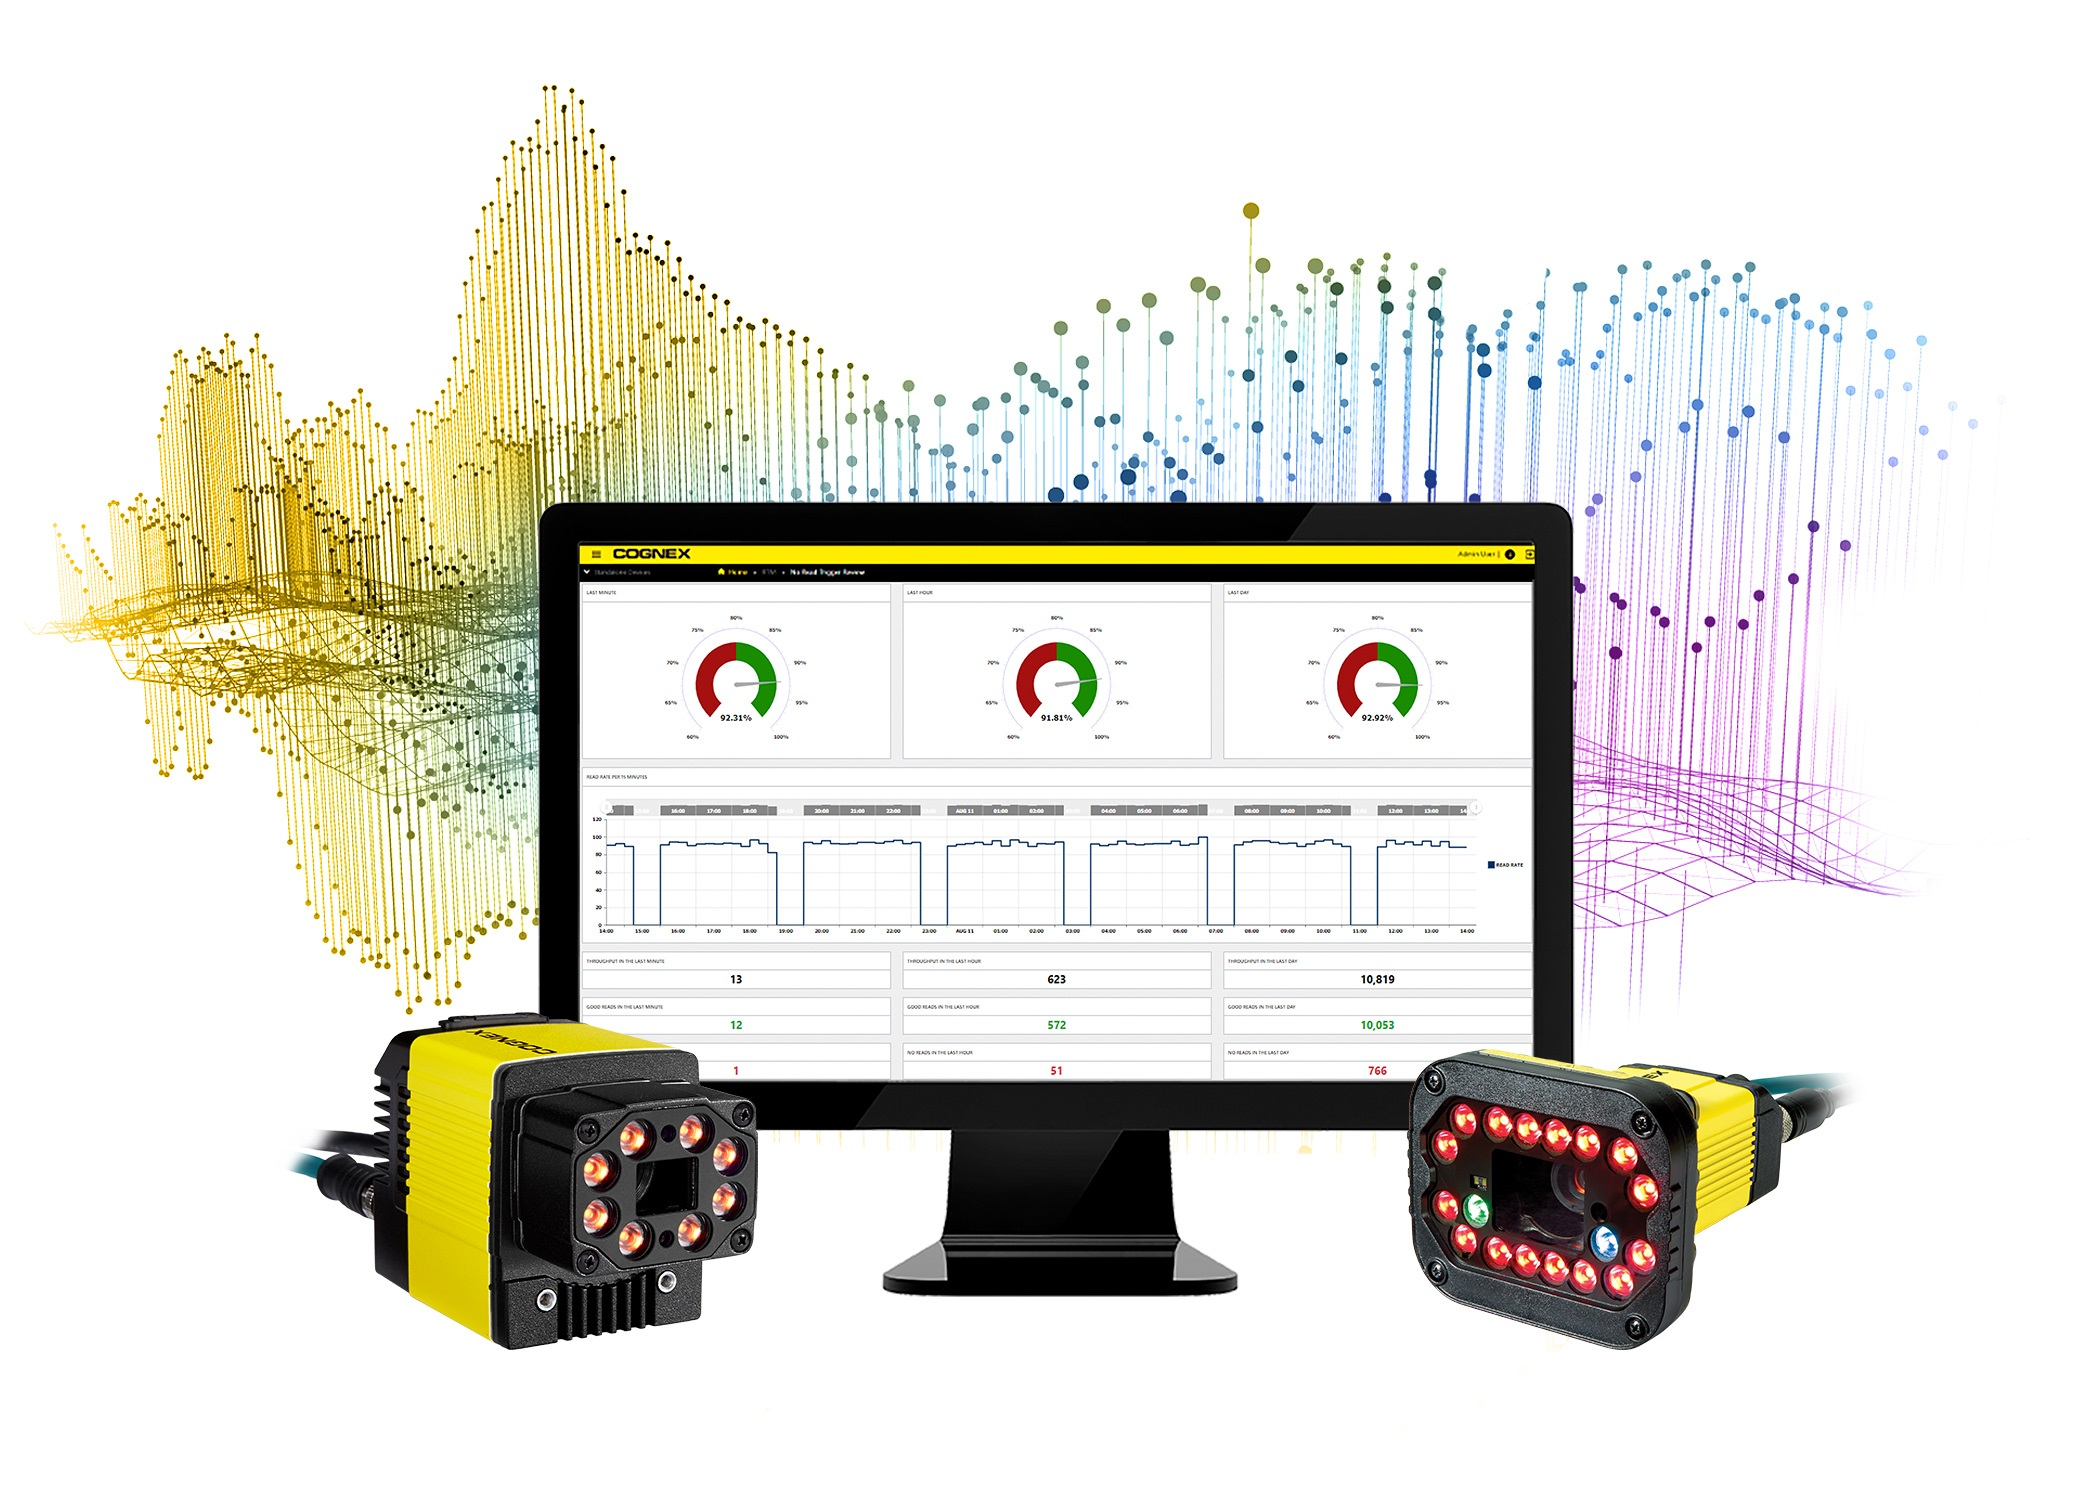 Cognex Edge Intelligence Platform